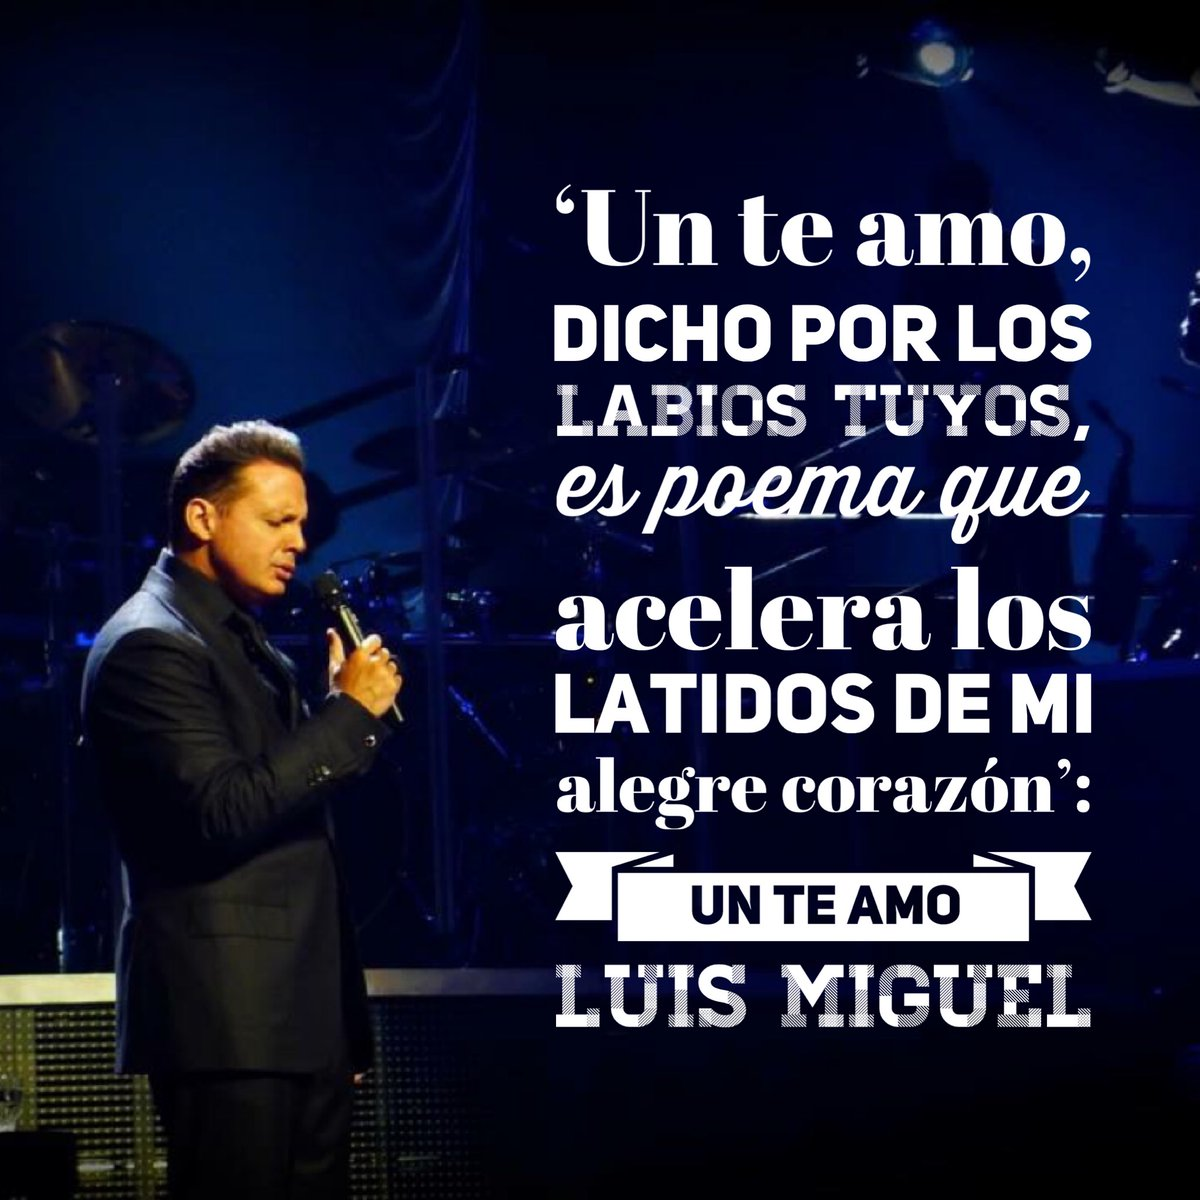 Luis Miguel Quotes в Twitter Te Imaginas Que At Lmxlm Te